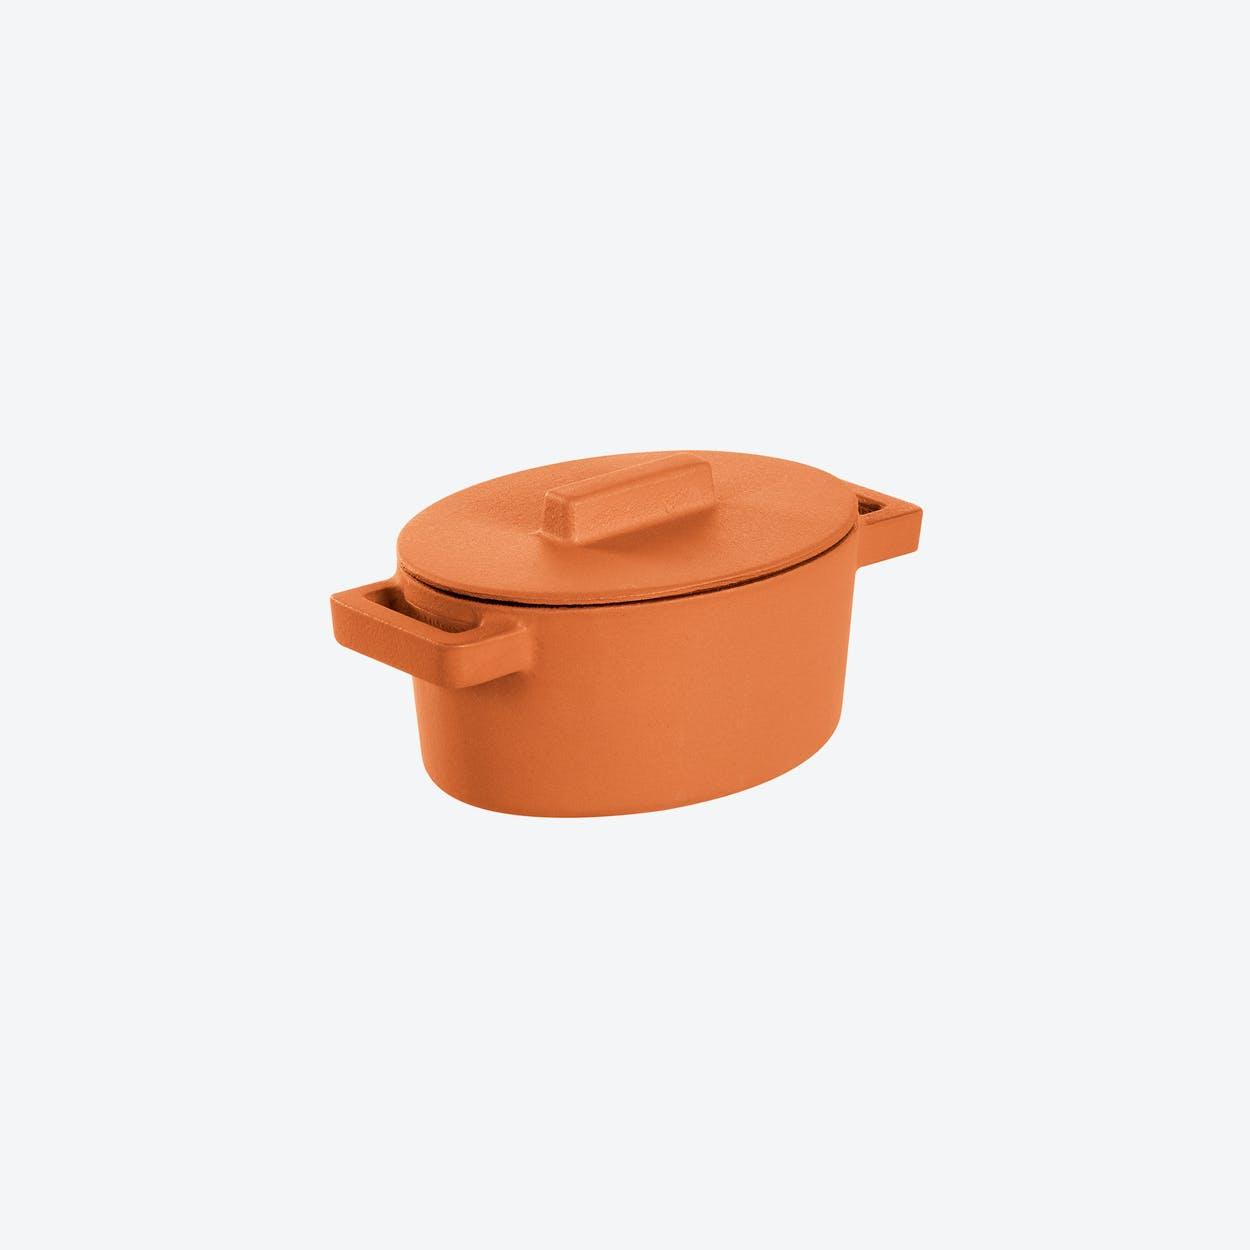 TerraCotto Cast Iron Oval Casserole Pot w/ Lid in Curry